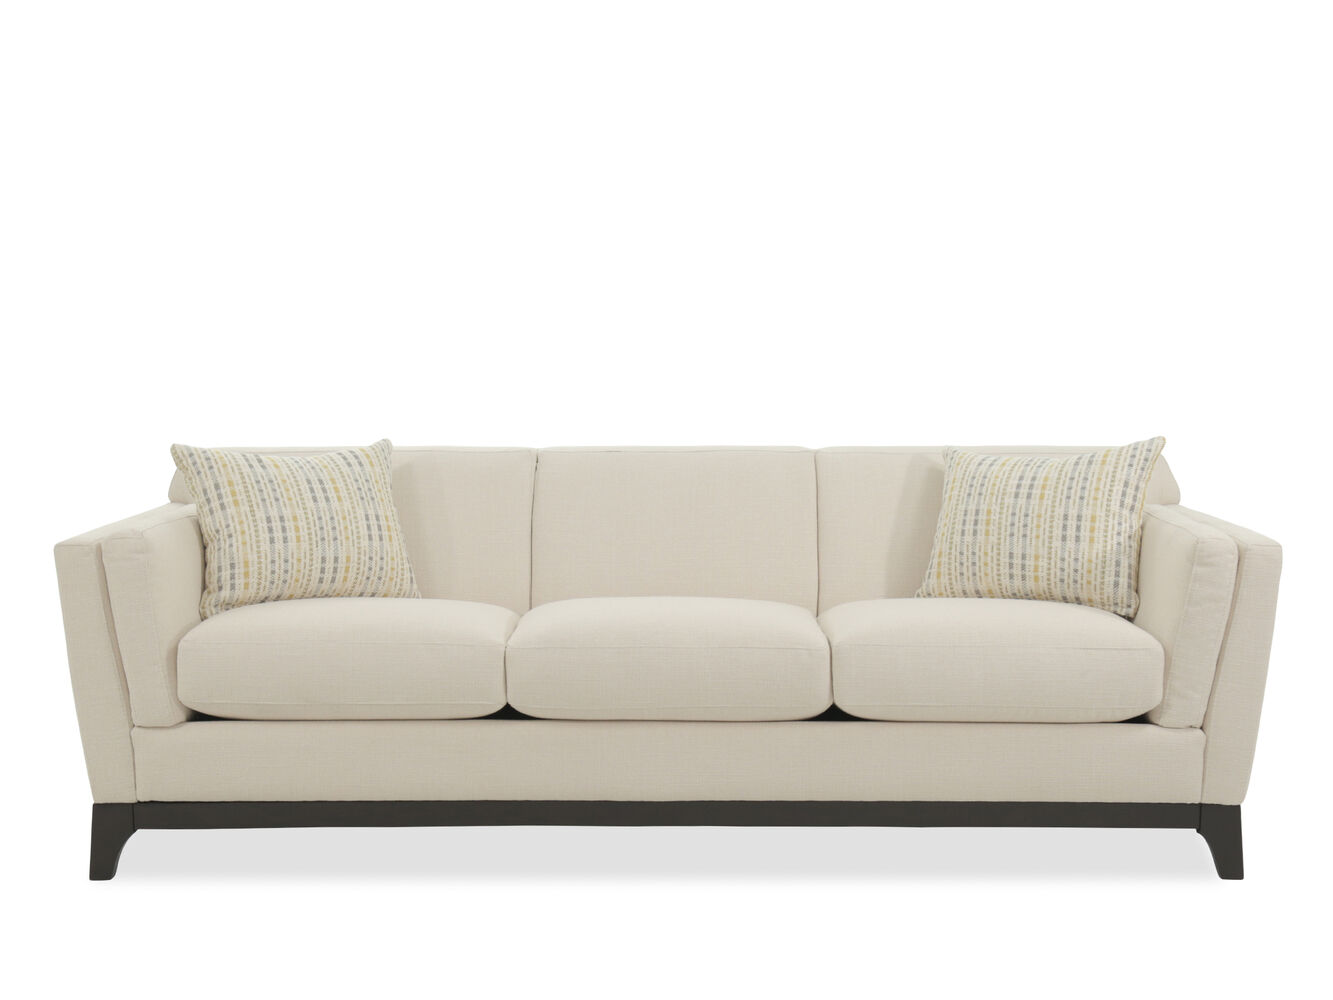 Casual 92 three seater sofa in beige mathis brothers for Casual couch